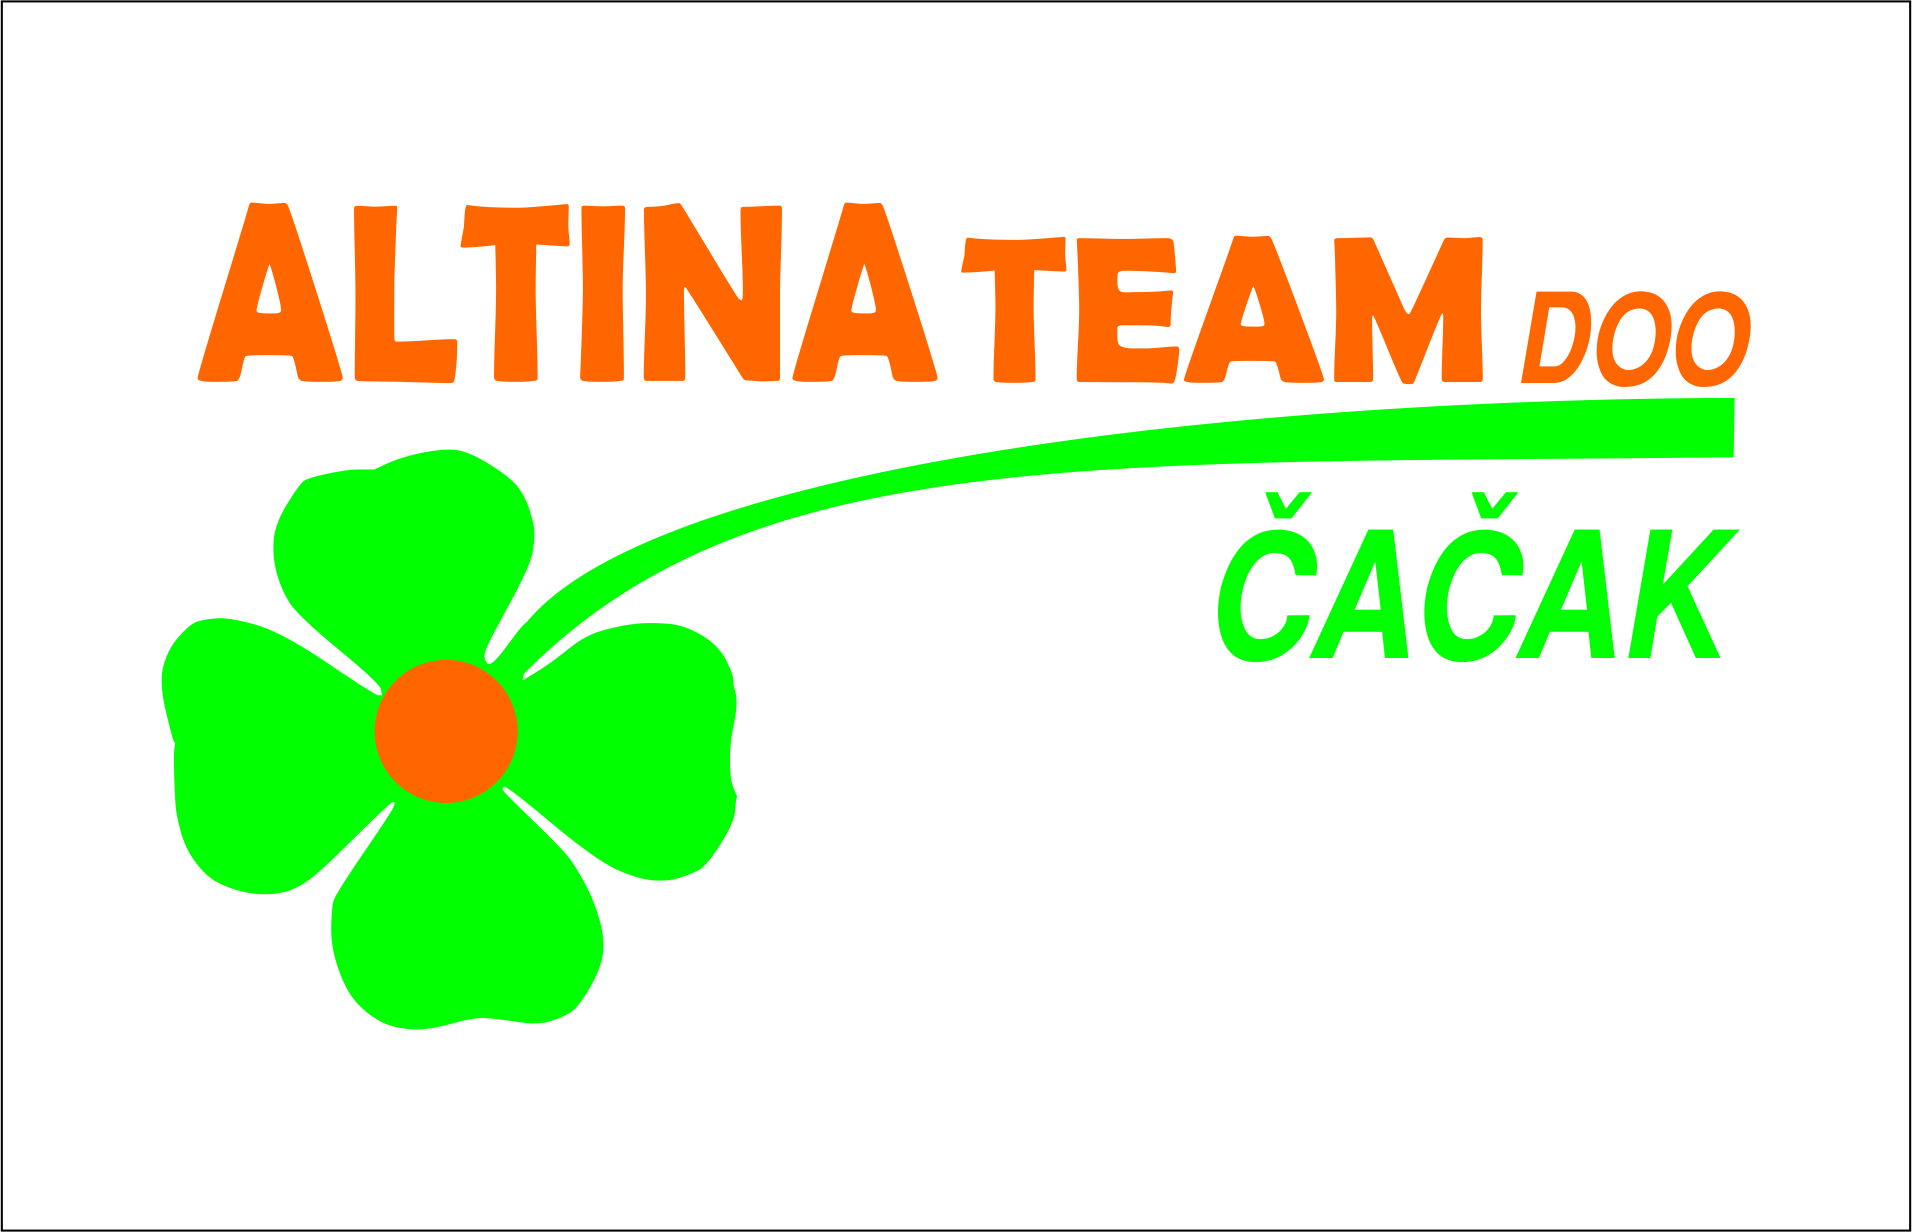 ALTINA TEAM DOO